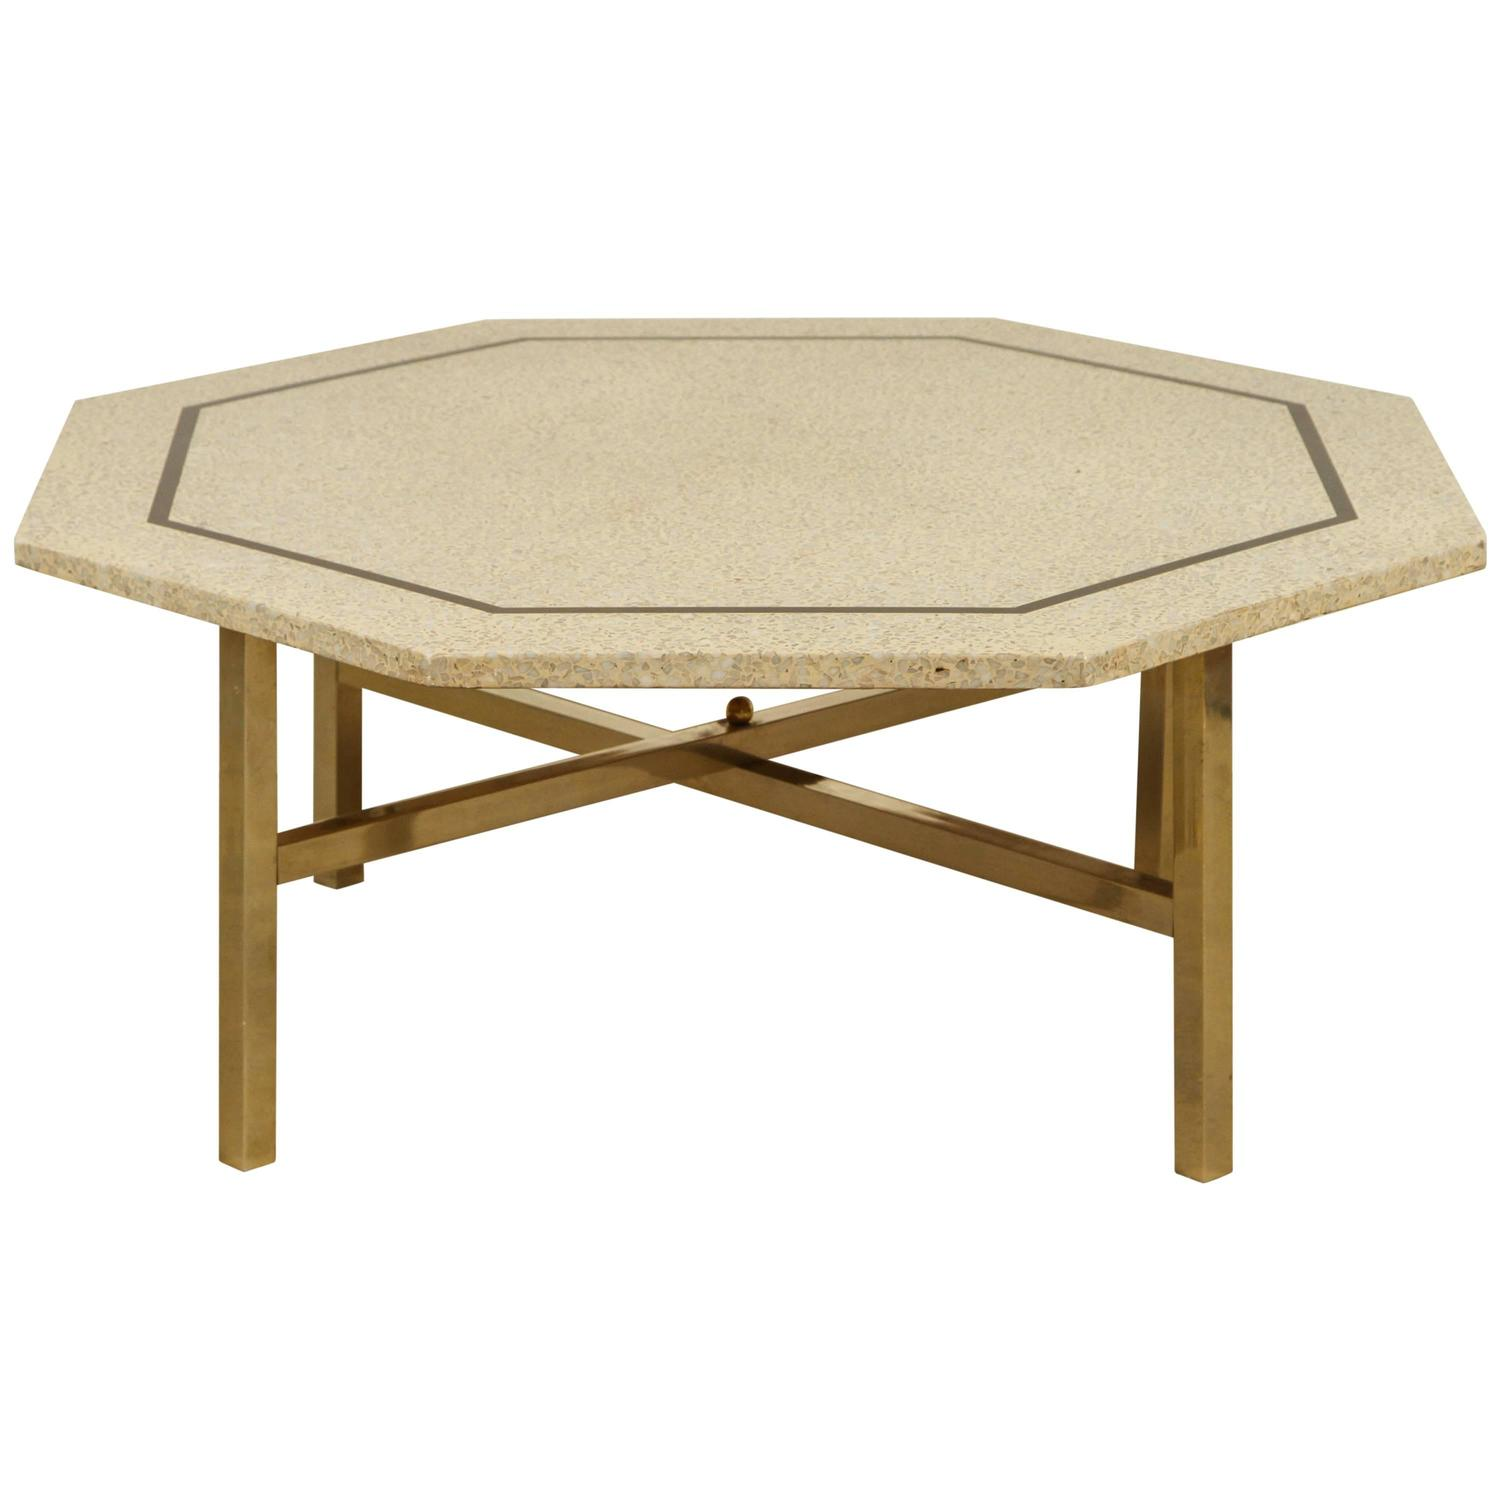 Terrazzo And Brass Cocktail Table By Harvey Probber At 1stdibs